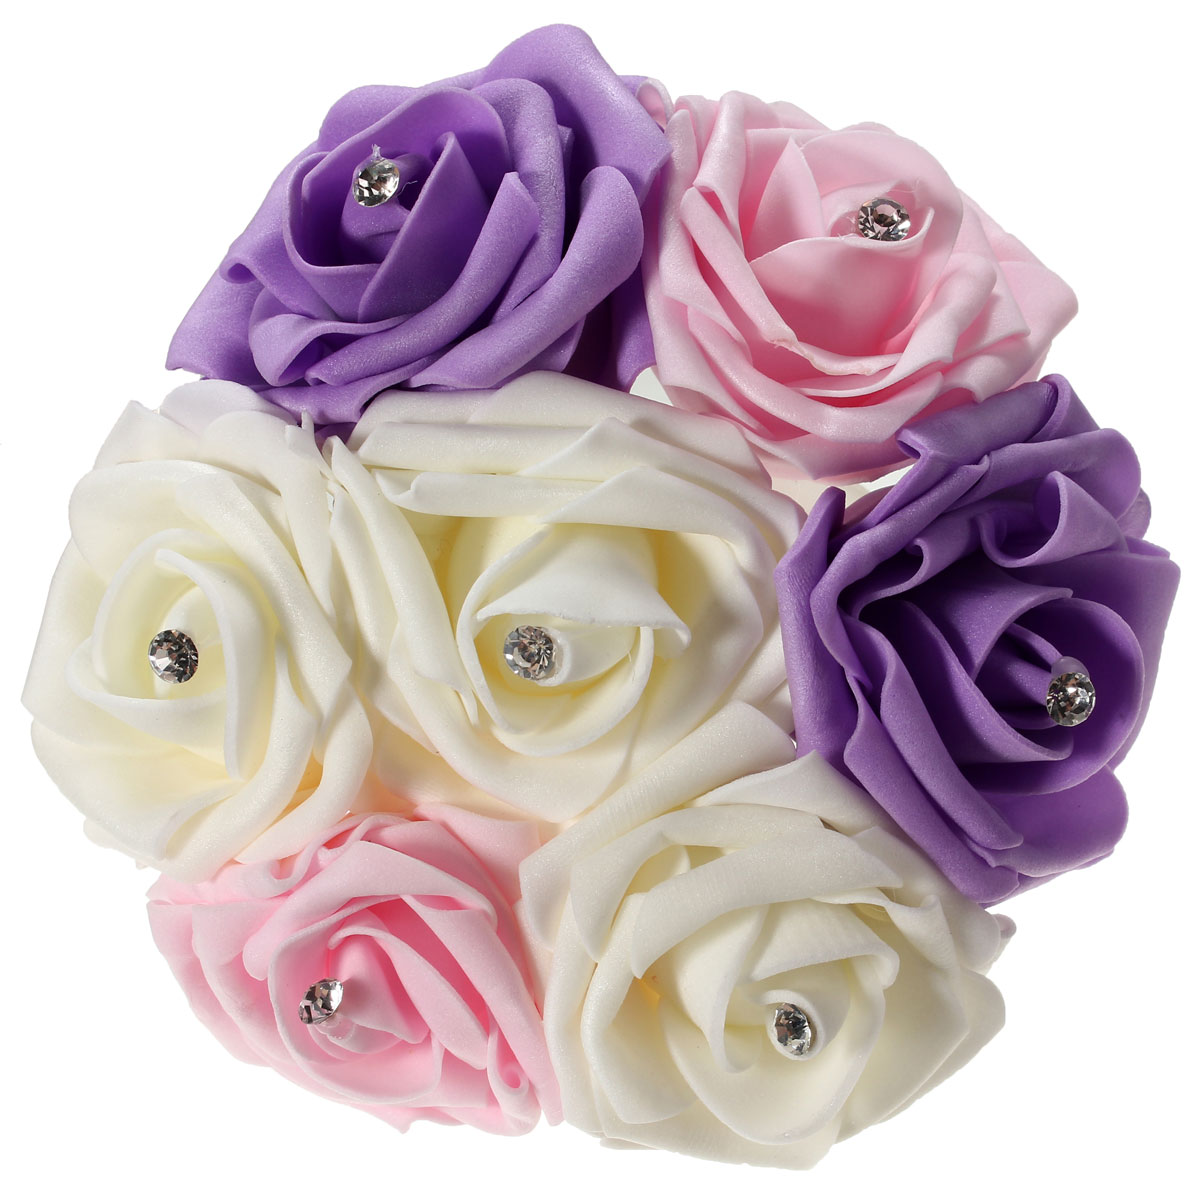 7 Heads Colourfast Foam Roses Crystal Artificial Flower Home Wedding Bride Bouquet Party Decoration